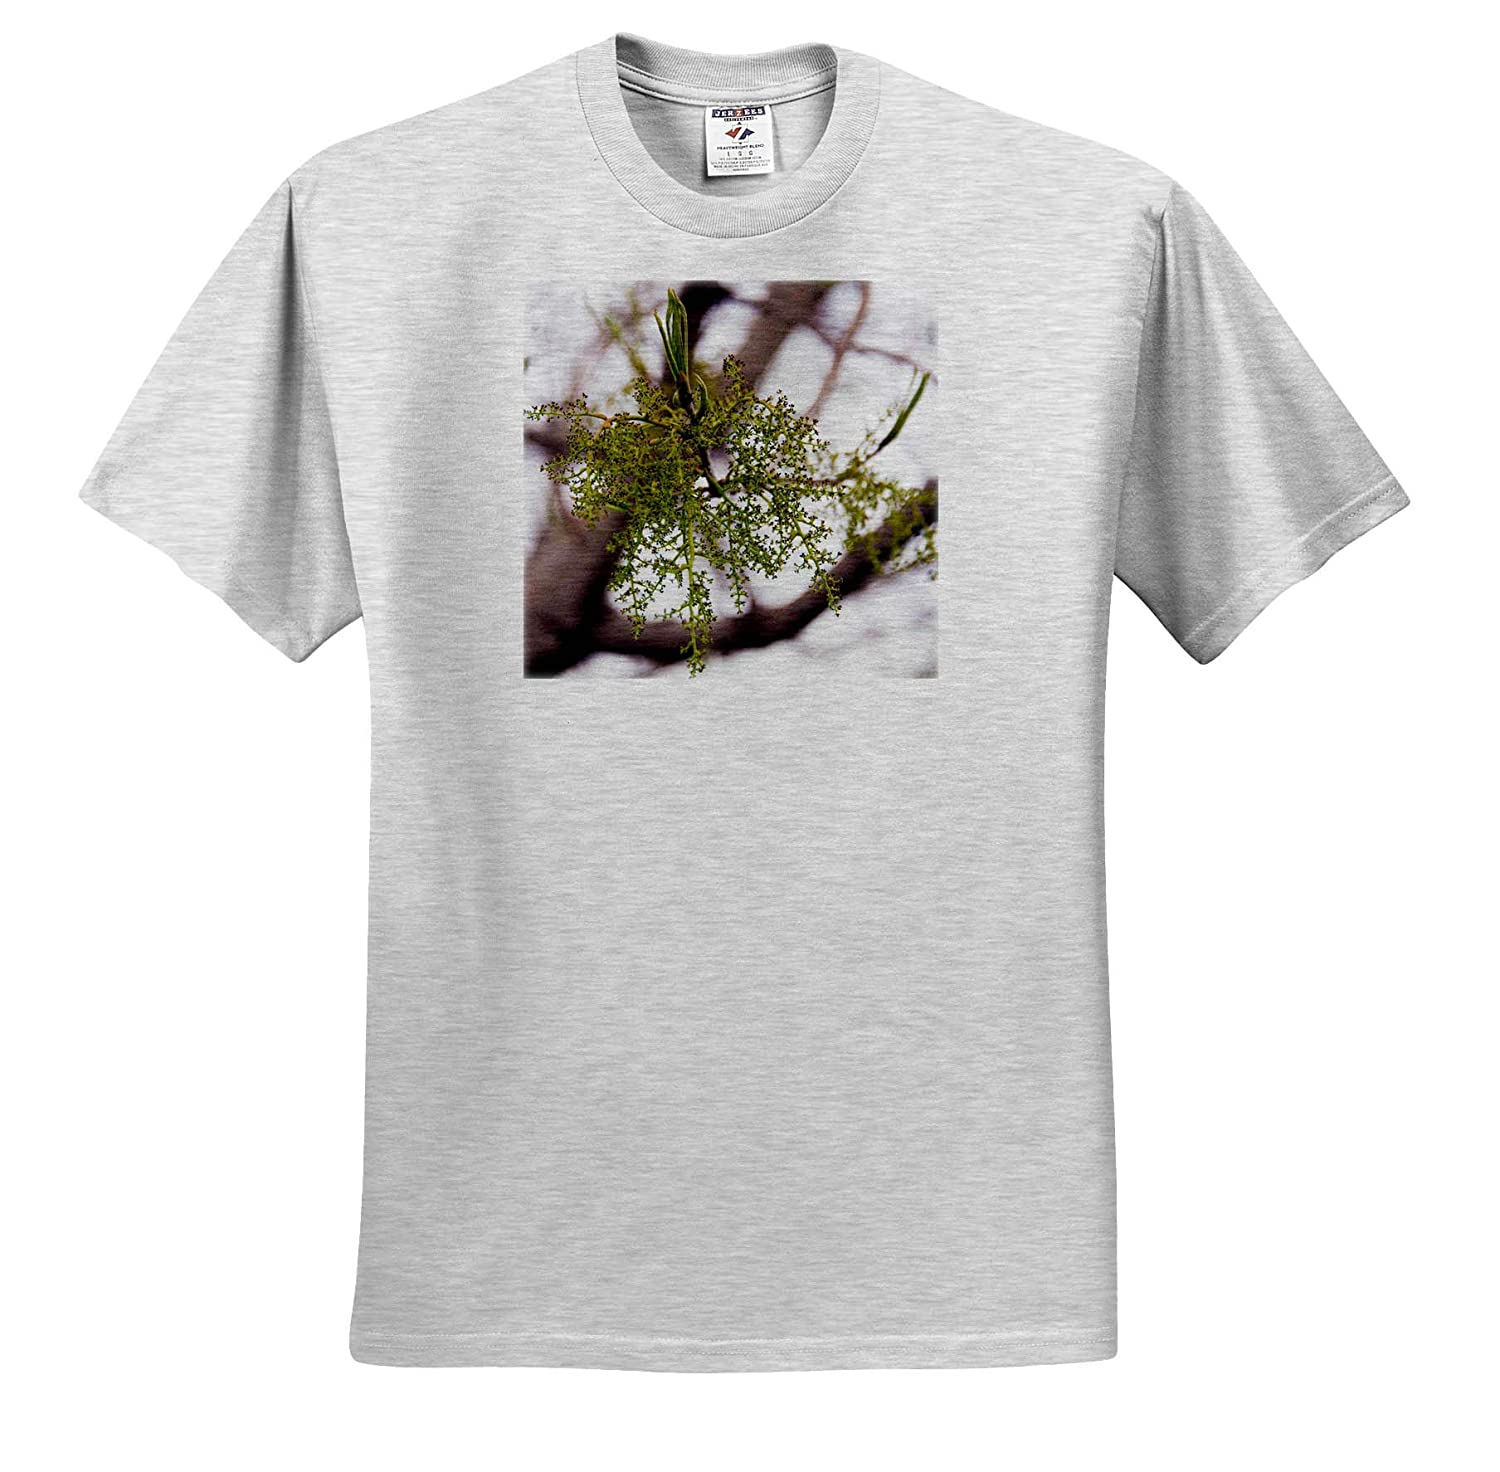 3dRose Jos Fauxtographee Tree Life A Tree just Coming to Life with Buds on Branches T-Shirts